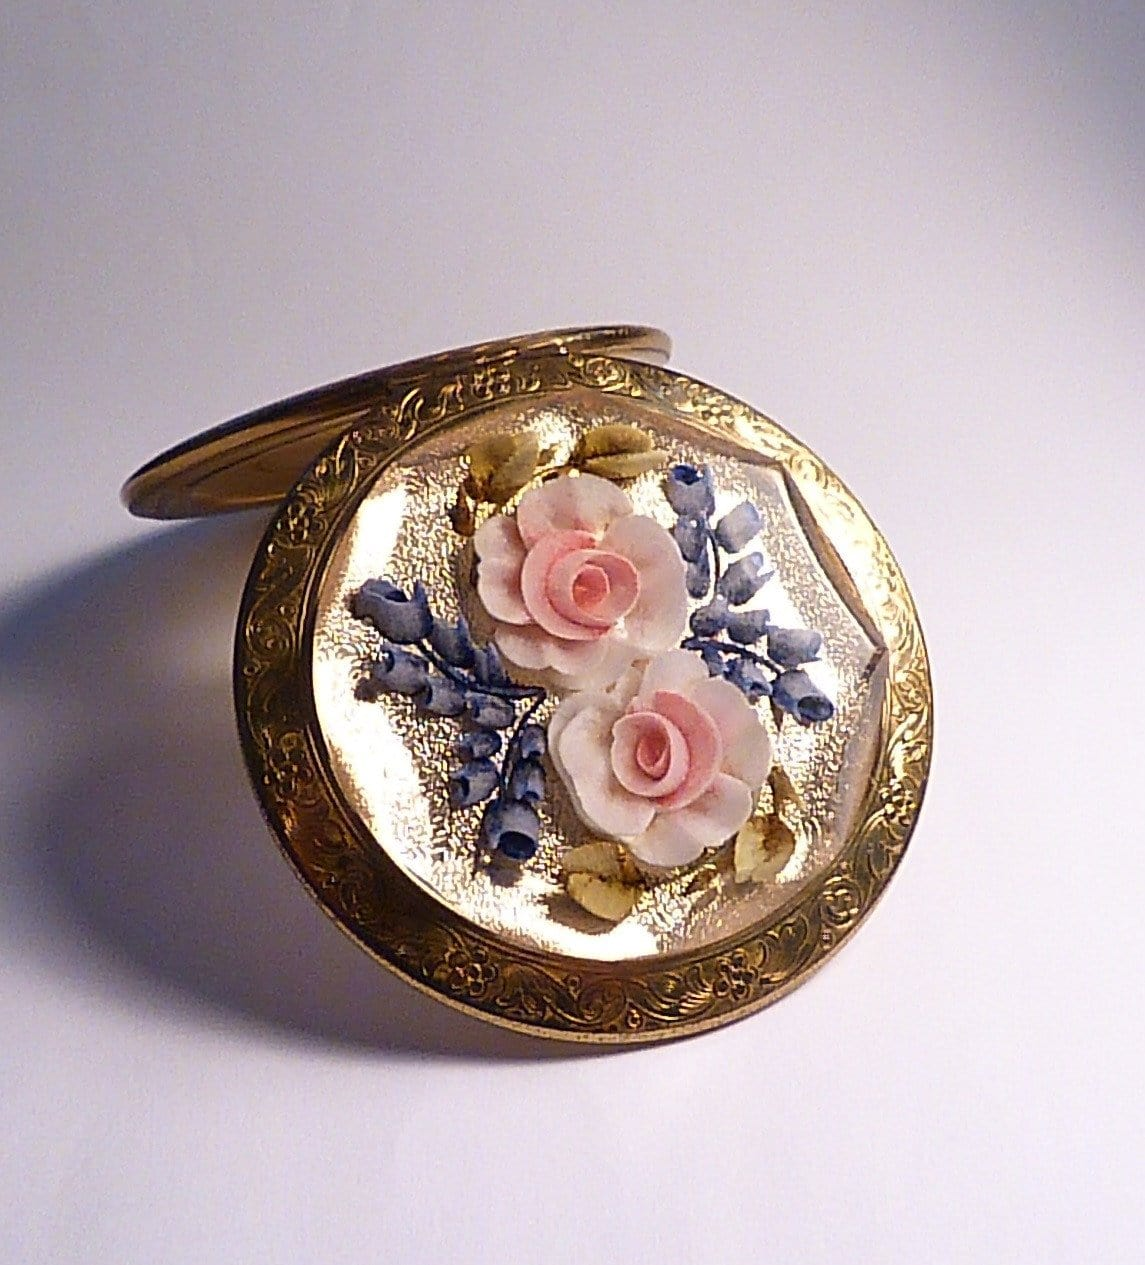 10th wedding / tin wedding anniversary gifts for ladies 1950s Lucite Melissa floral compact - The Vintage Compact Shop